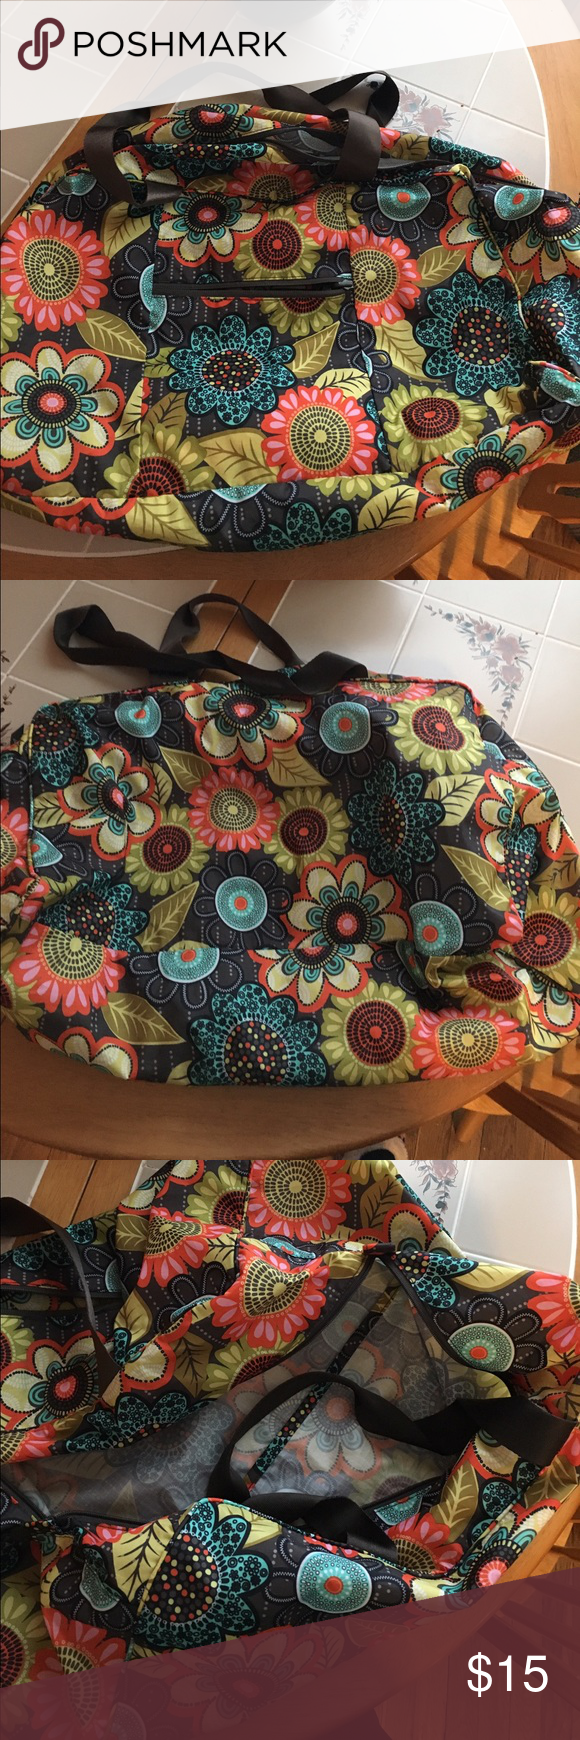 Gently used duffle Great for the gym or a weekend trip! Nylon material no signs of wear Vera Bradley Bags Travel Bags